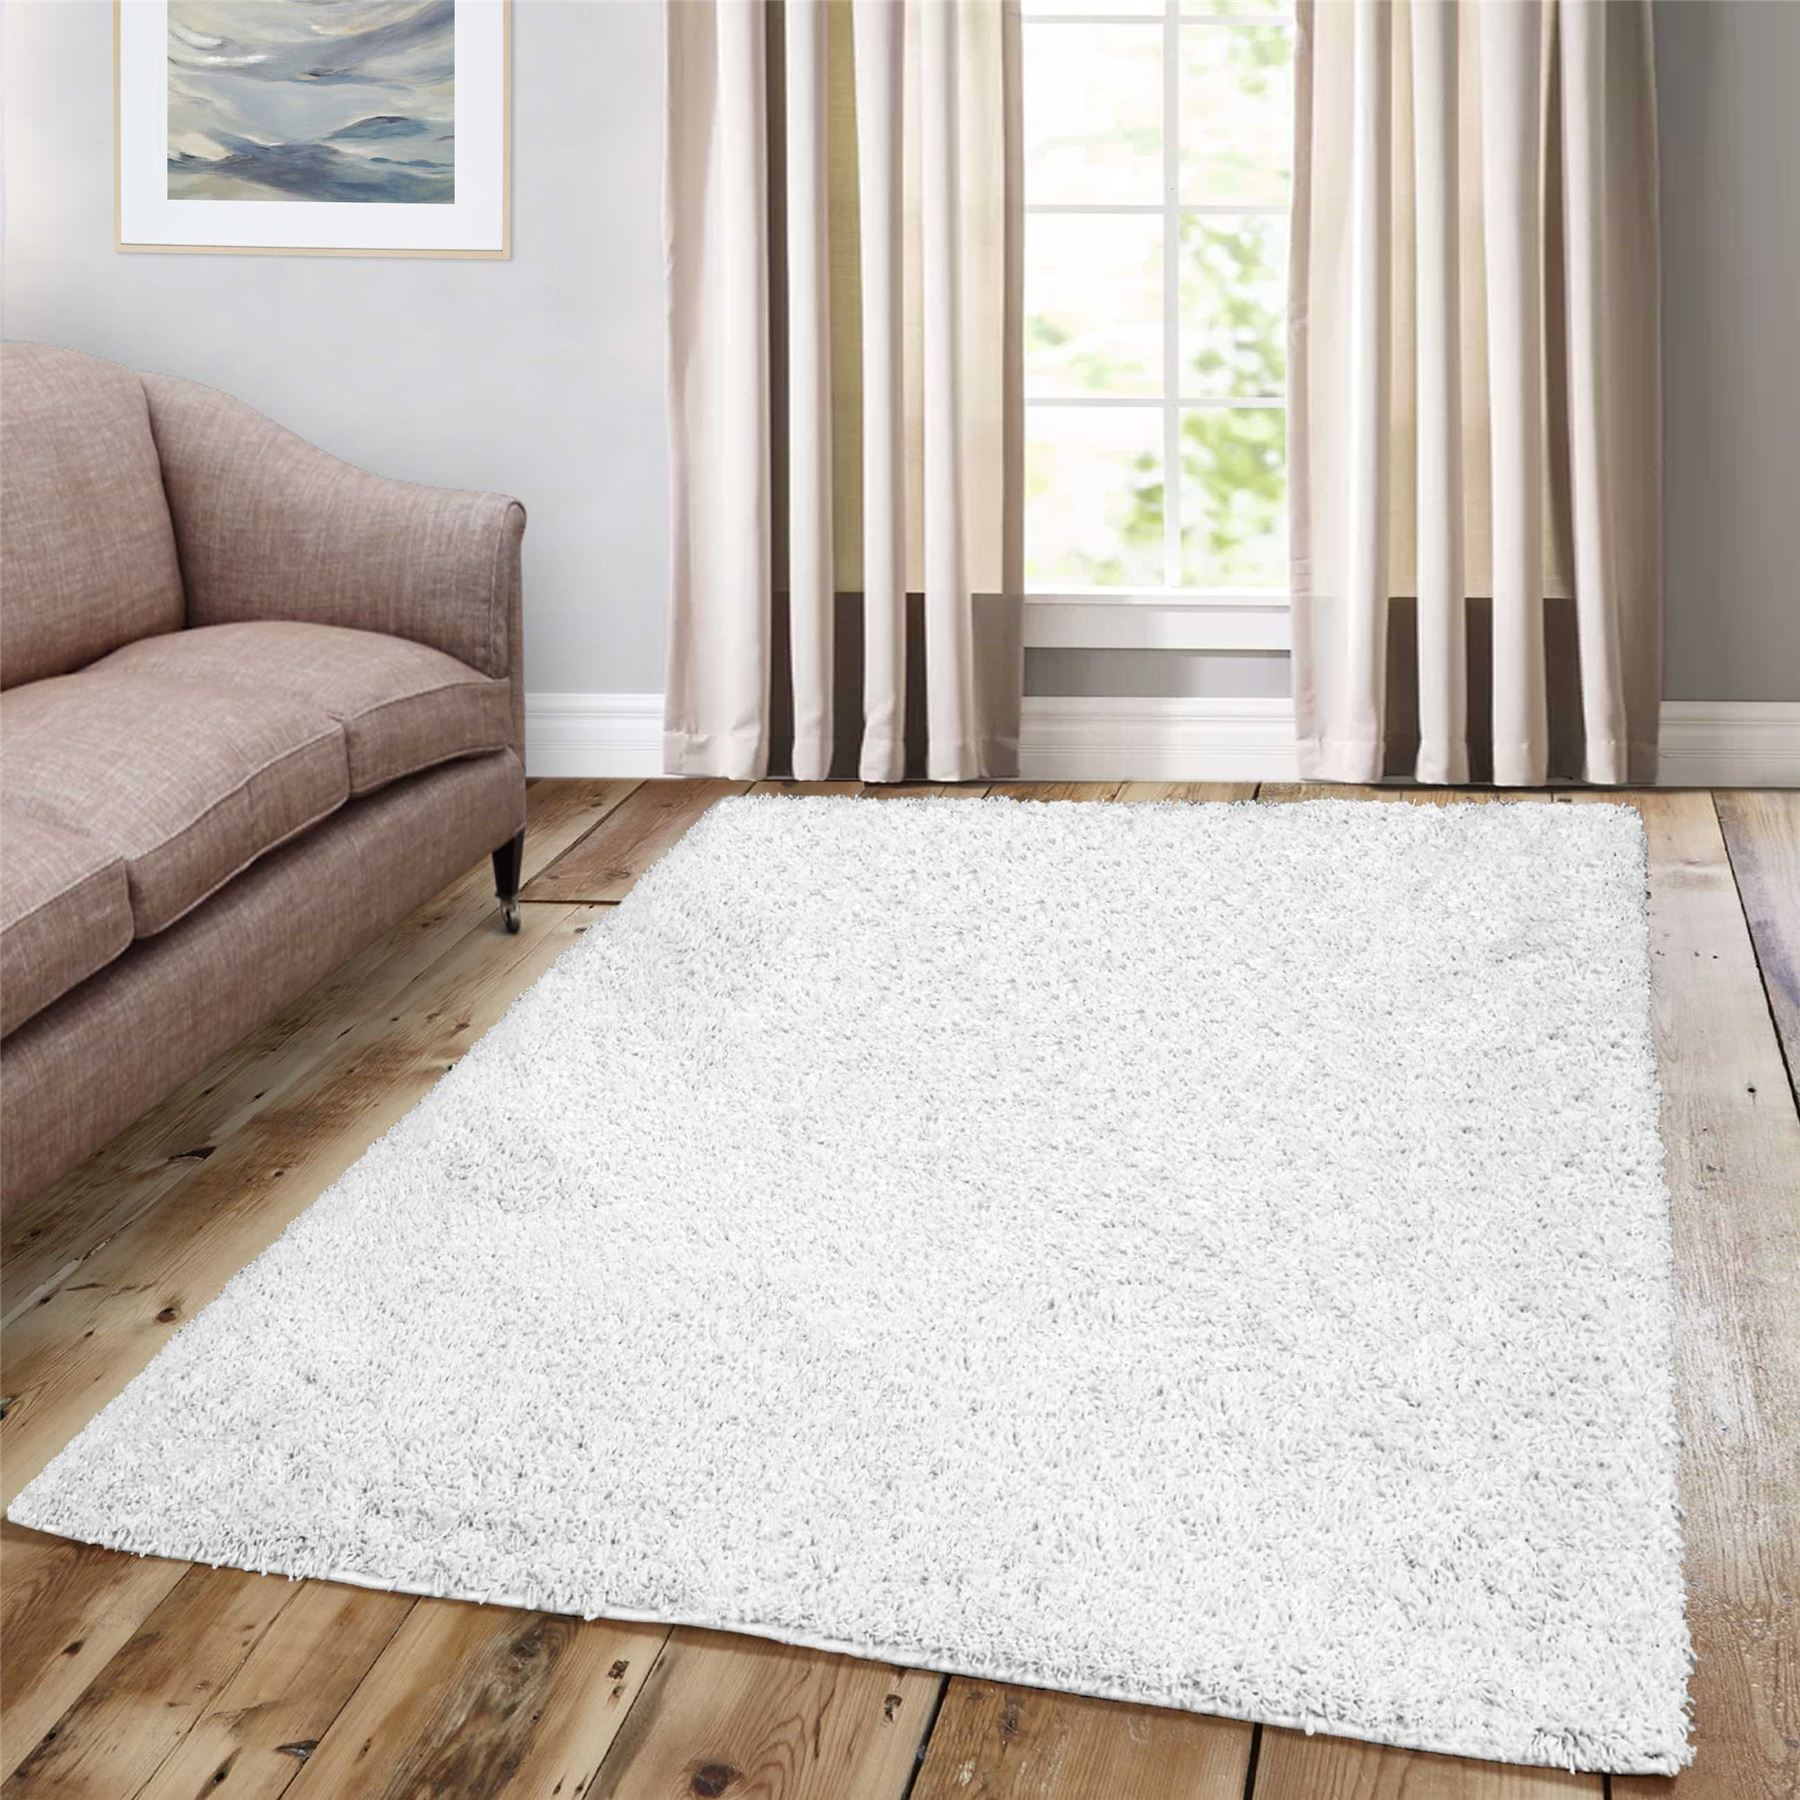 Fabulous Details About Large Plain White Modern Rugs Thick Fluffy Shag Rug Soft Bedroom Area Carpets Download Free Architecture Designs Scobabritishbridgeorg